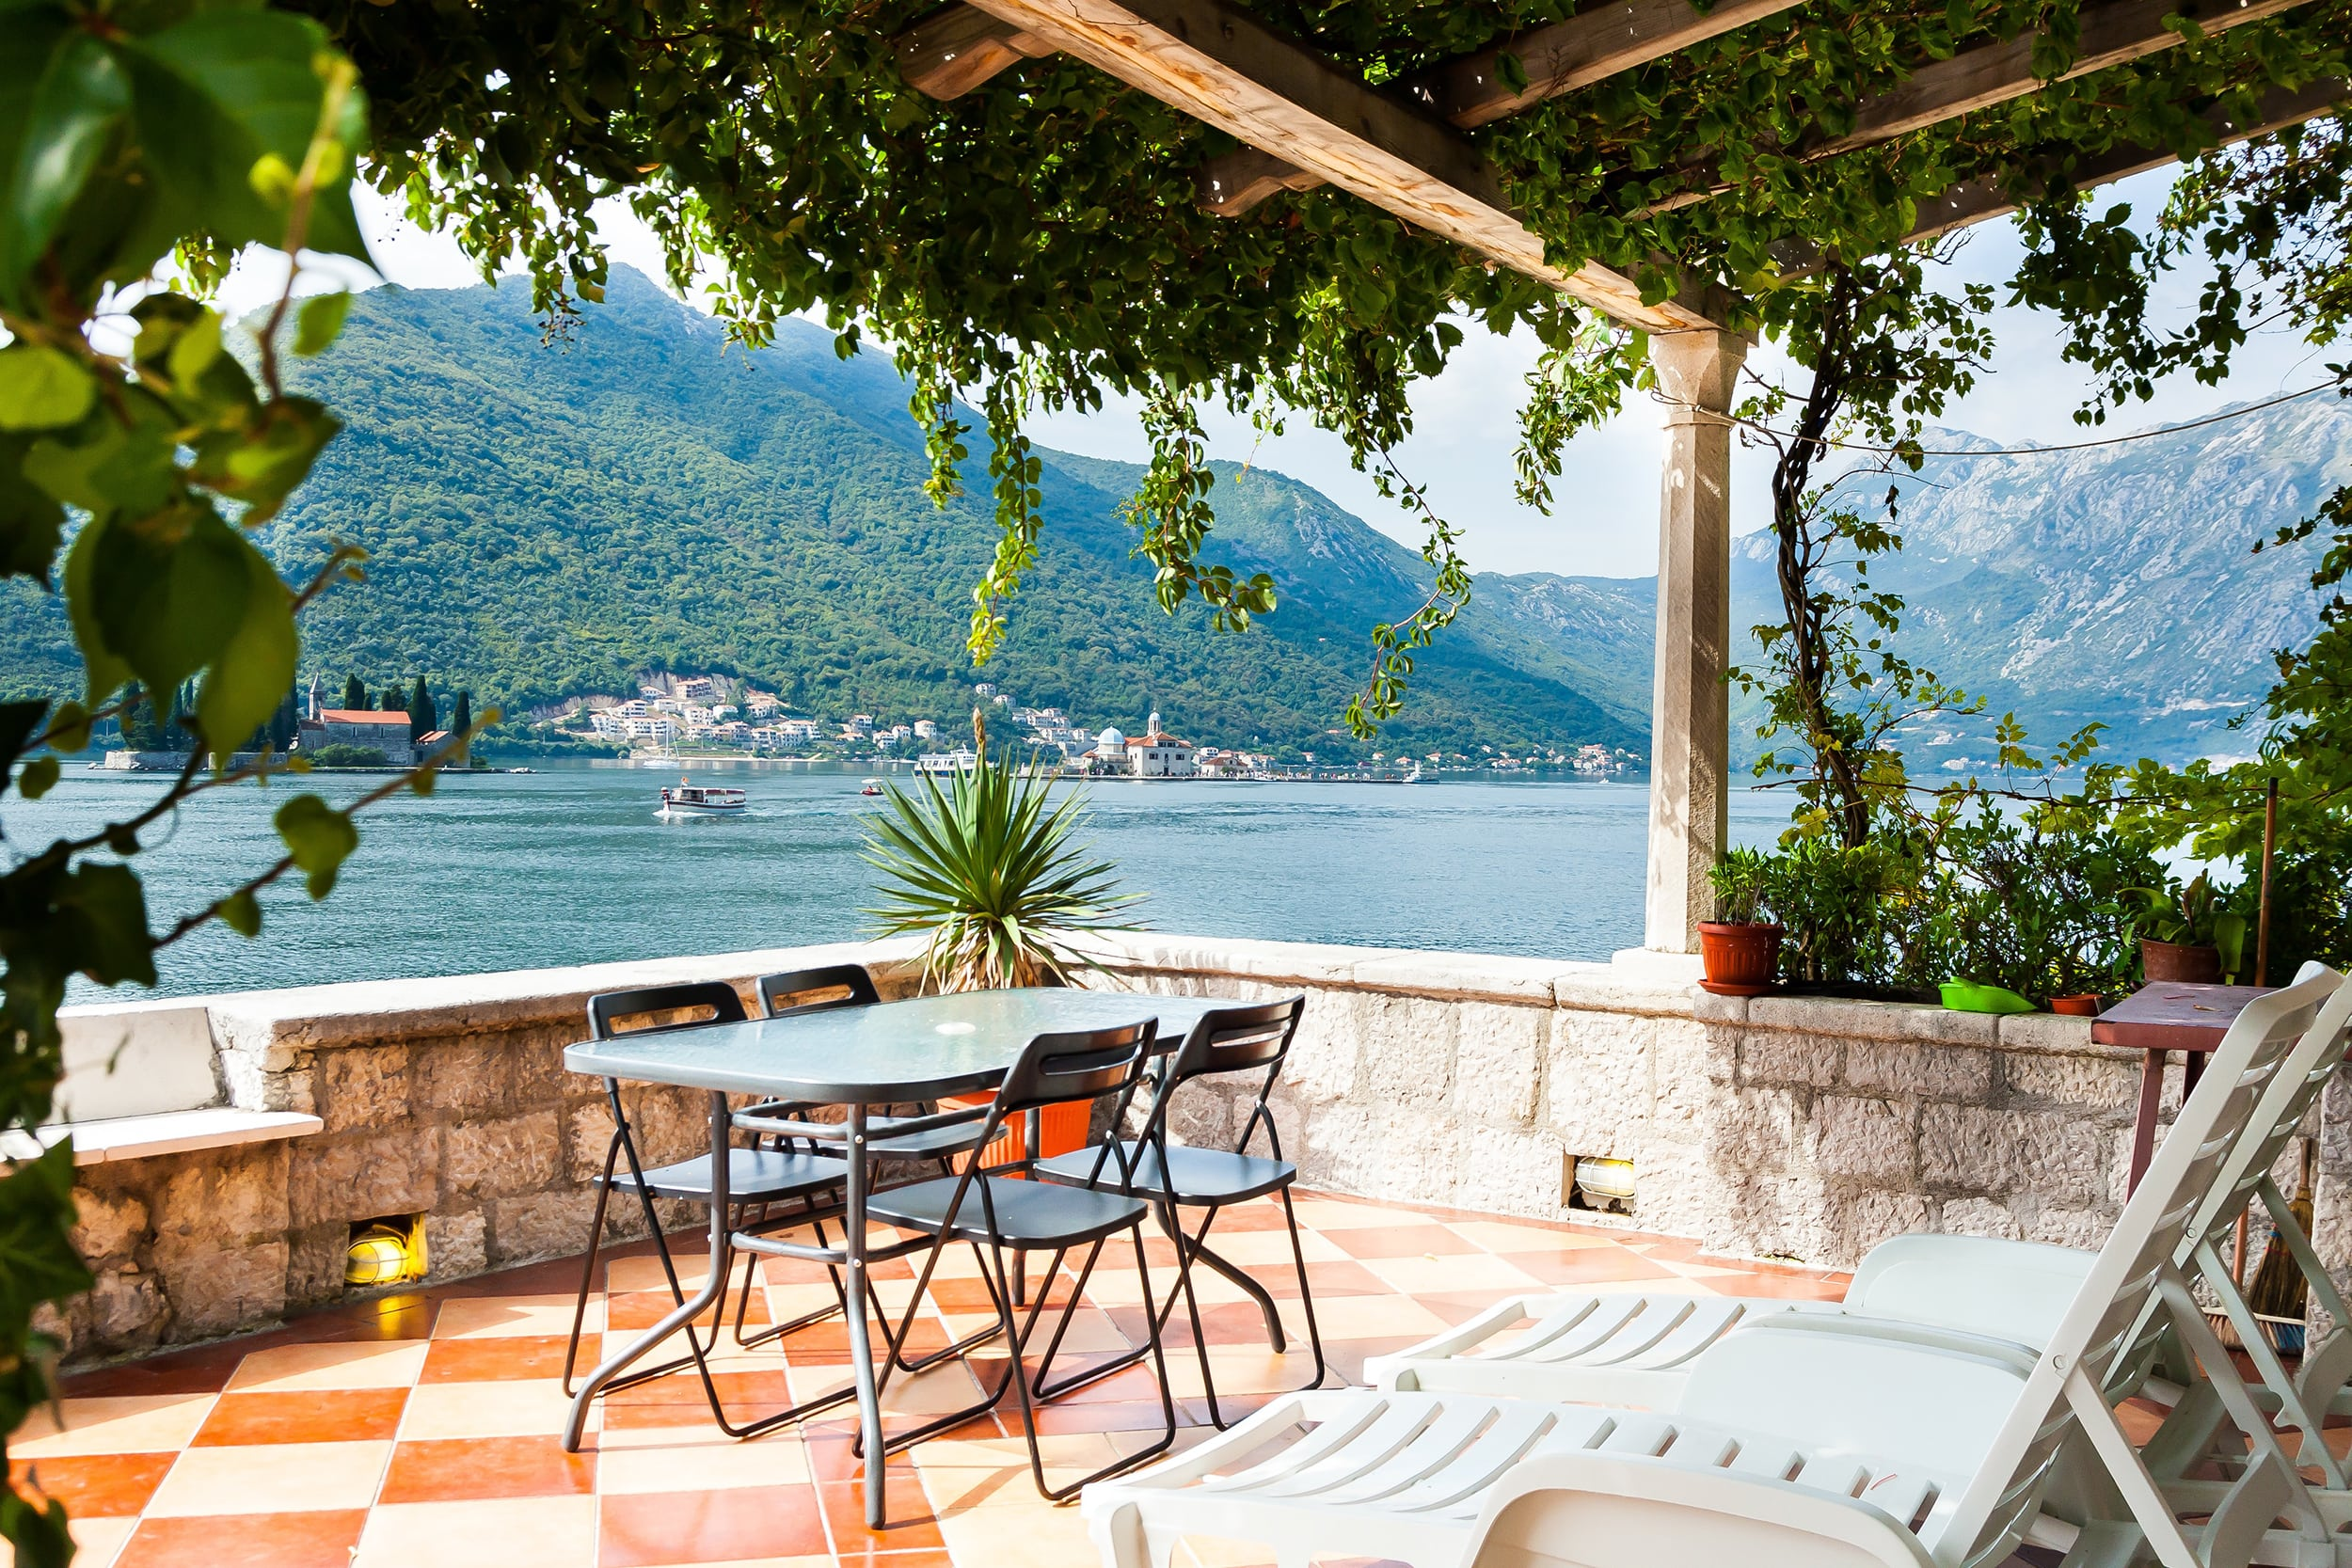 Waterfront with extraordinary view, Kotor, Montenegro